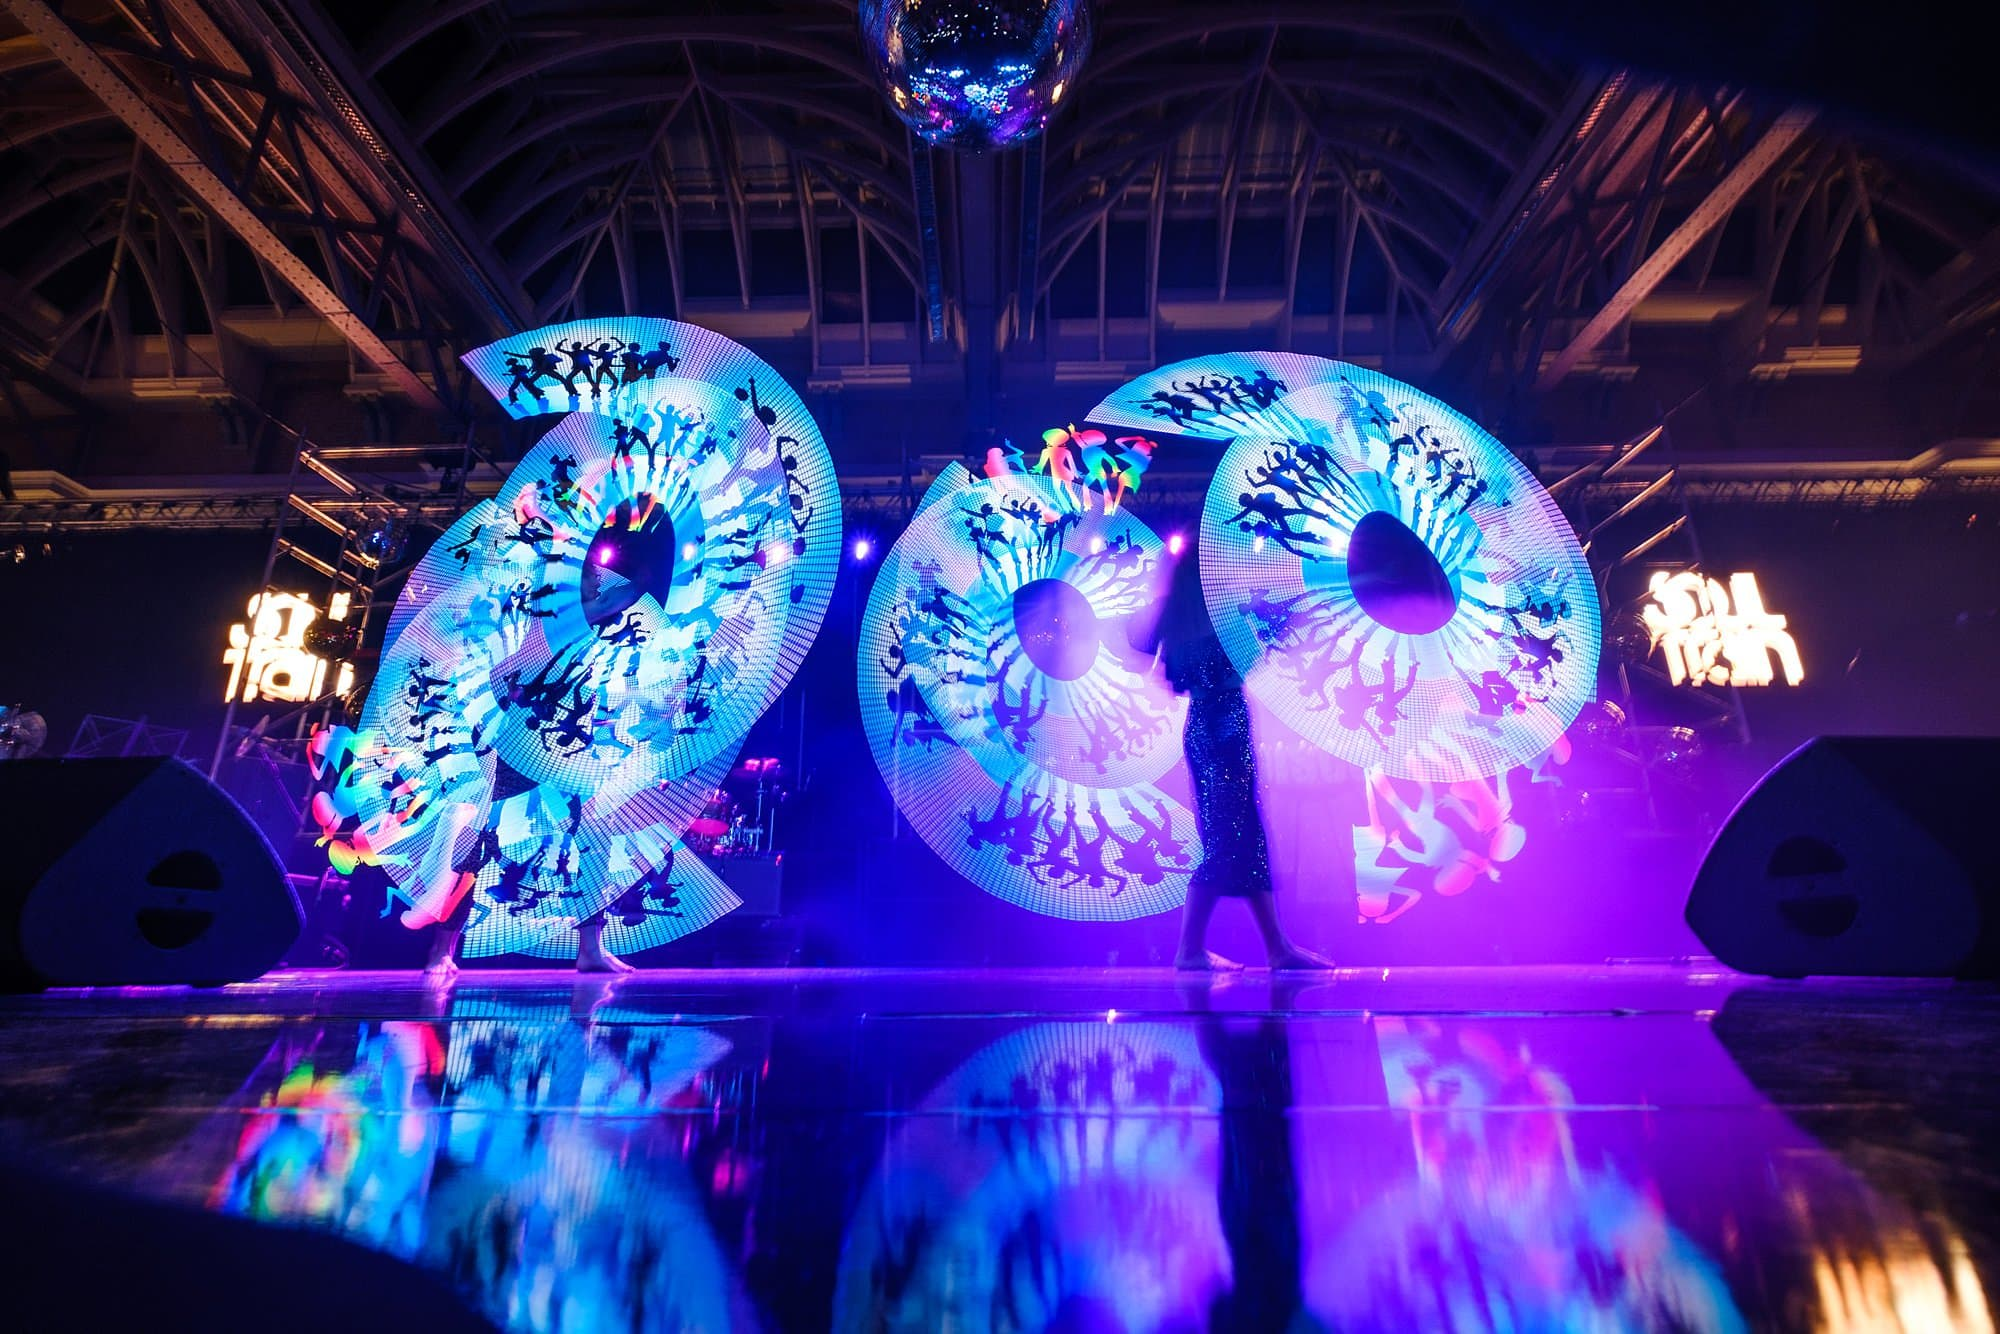 london event photographer old billingsgate delicious 021 - A Corporate Party at Old Billingsgate